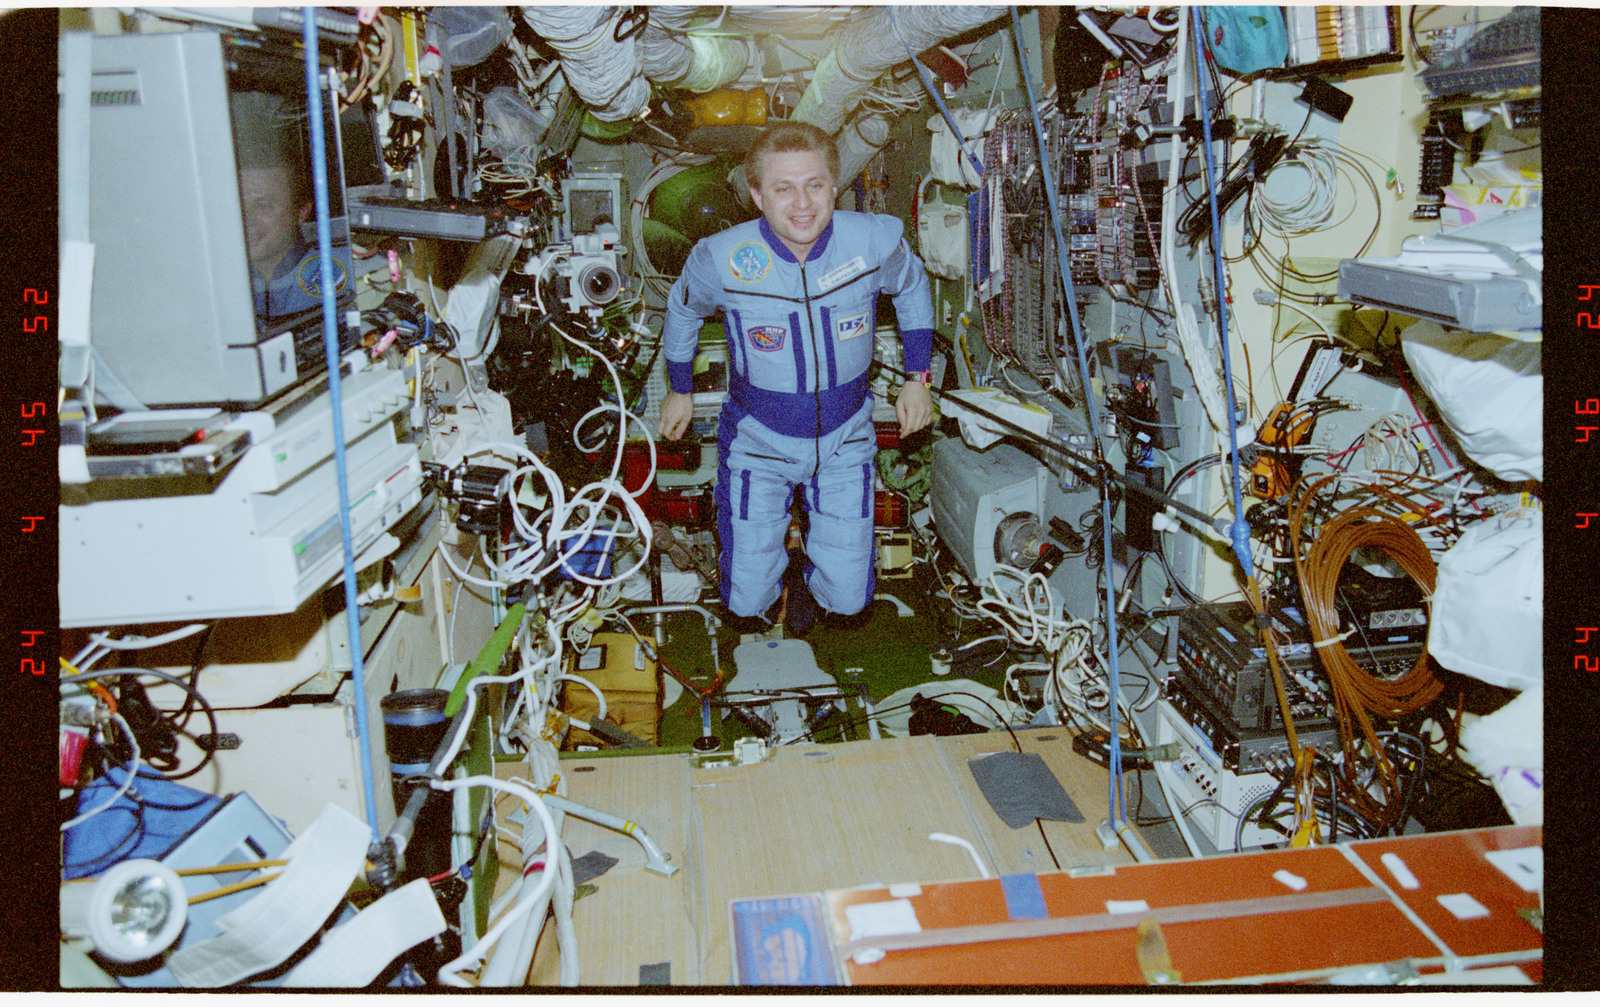 STS076-344-034 - STS-076 - Opening the hatch and welcome ceremony in the Mir Space Station